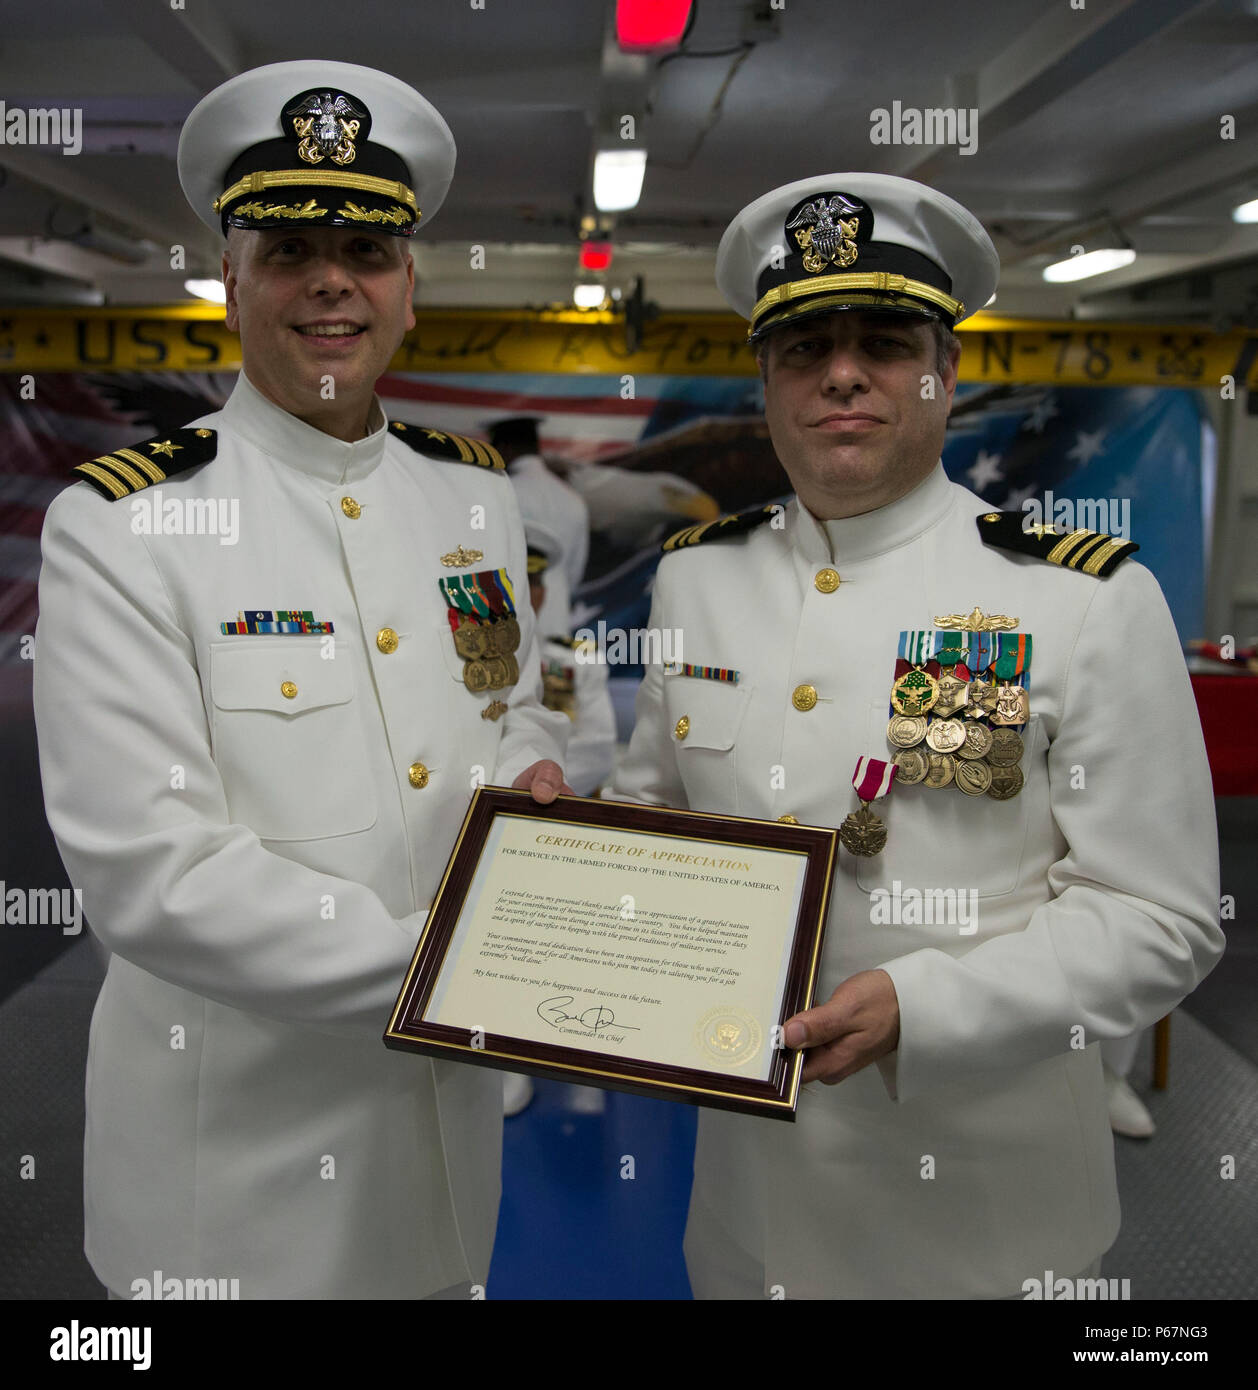 NEWPORT NEWS, Va. (May 13, 2016) --Cmdr. Allan Feenstra, chief engineer, Pre-Commissioning Unit Gerald R. Ford (CVN 78) presents Lt. Cmdr. Michael Stone with a certificate of appreciation during a retirement ceremony in the ship's forecastle. Ford is the first of a new class of aircraft carriers currently under construction by Huntington Ingalls Industries Newport News Shipbuilding.  (U.S. Navy photo by Mass Communication Specialist Seaman Apprentice Connor Loessin/Released) - Stock Image